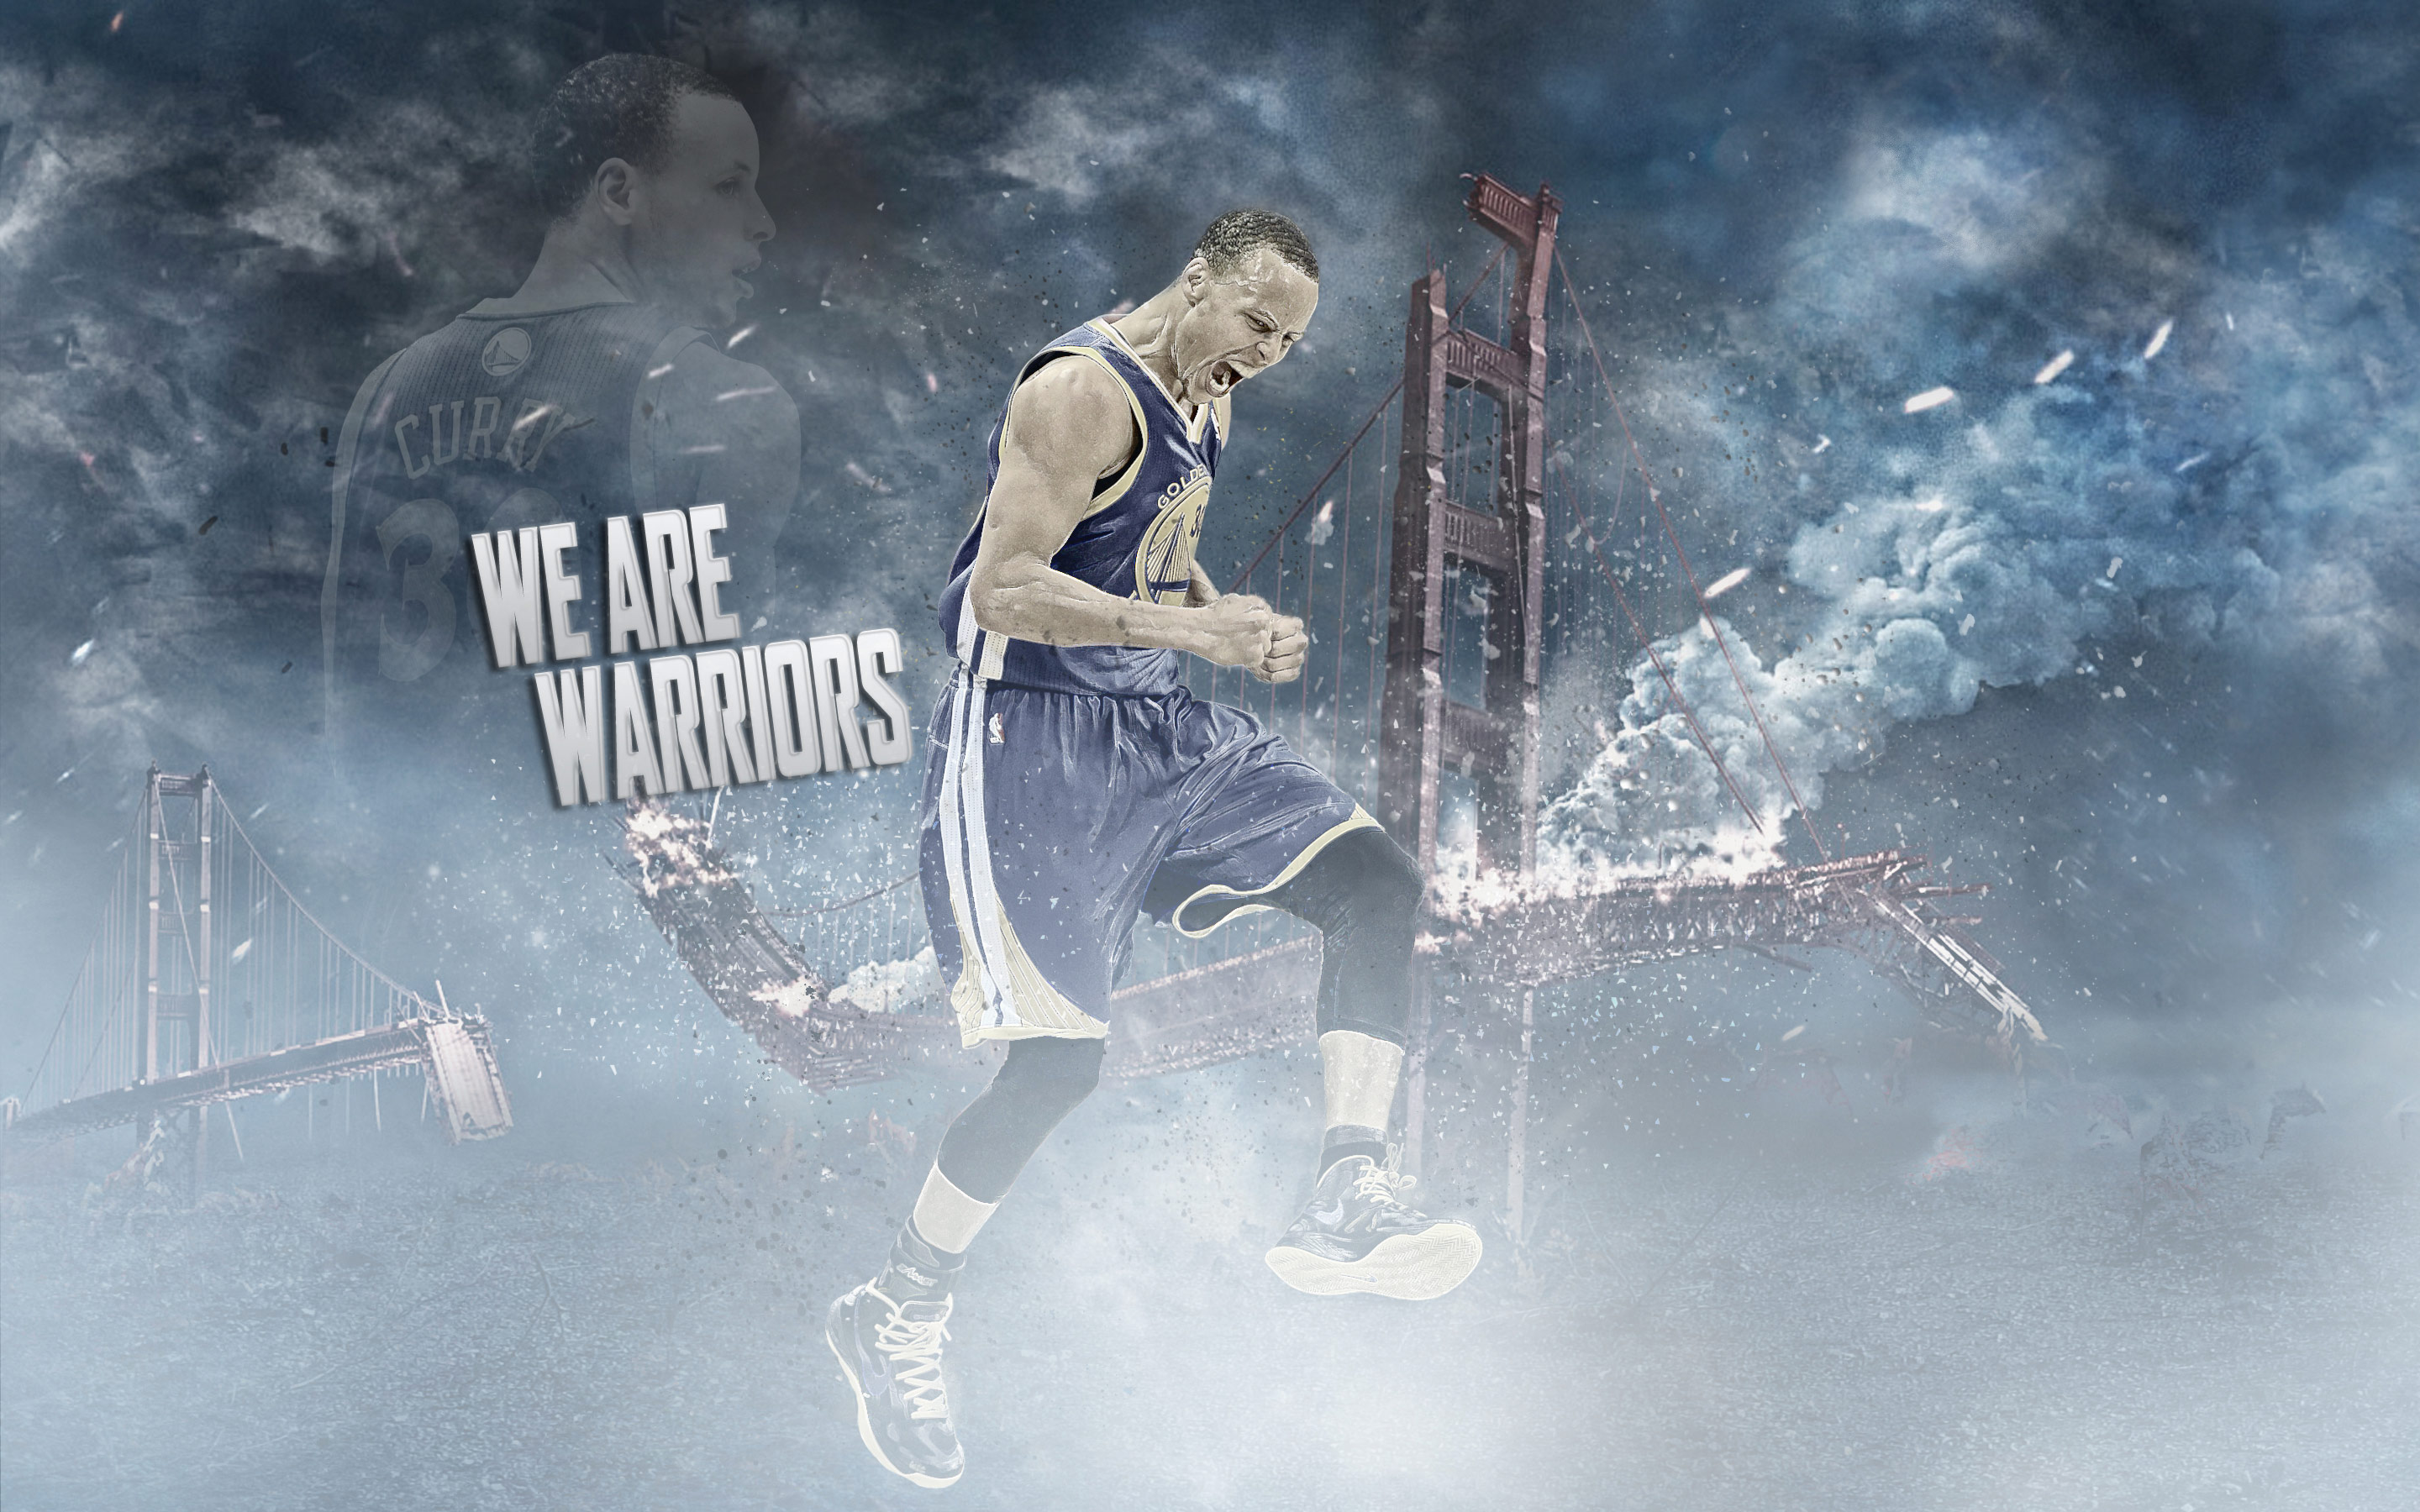 Free Download Golden State Warriors Wallpaper Hd 2018 Live